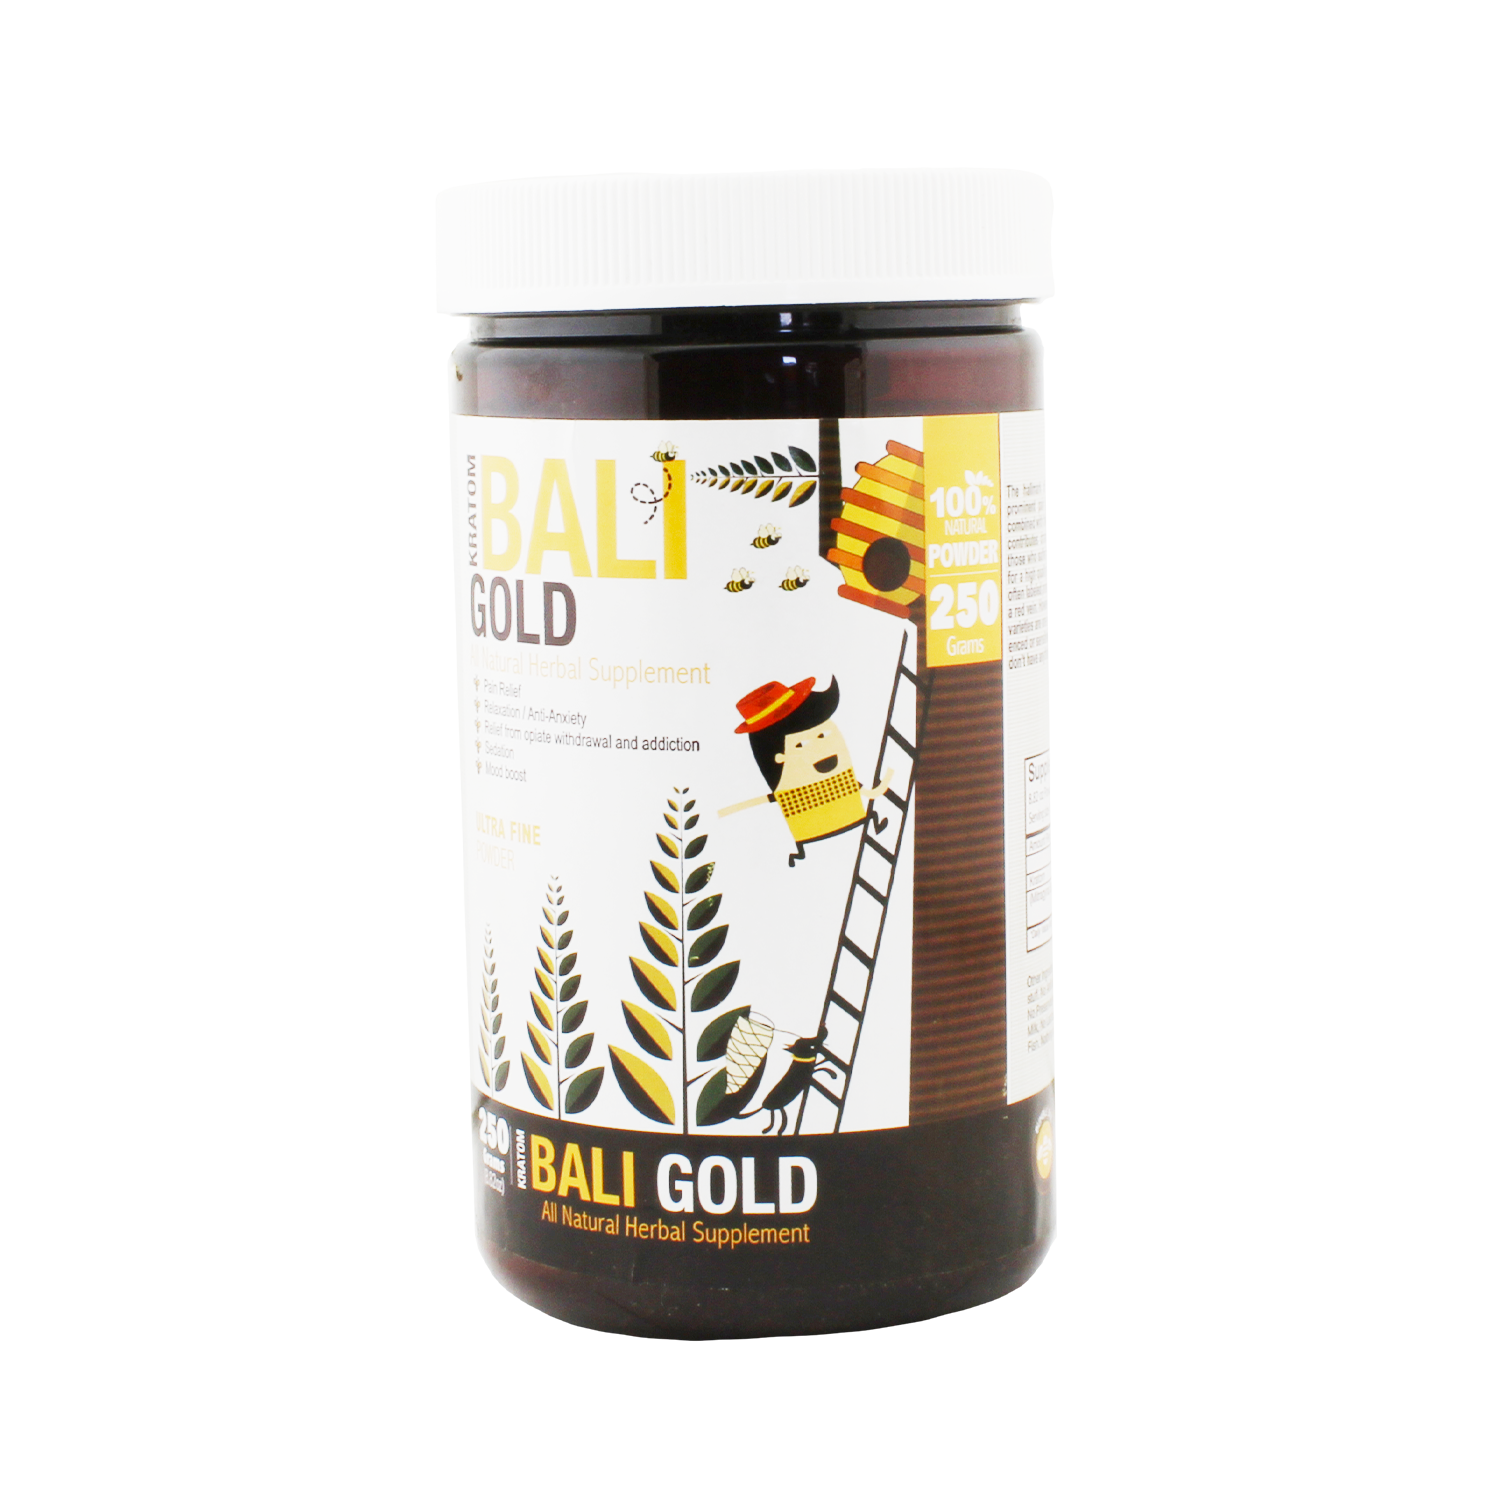 Bumble Bee Bali Gold Kratom (Powder)